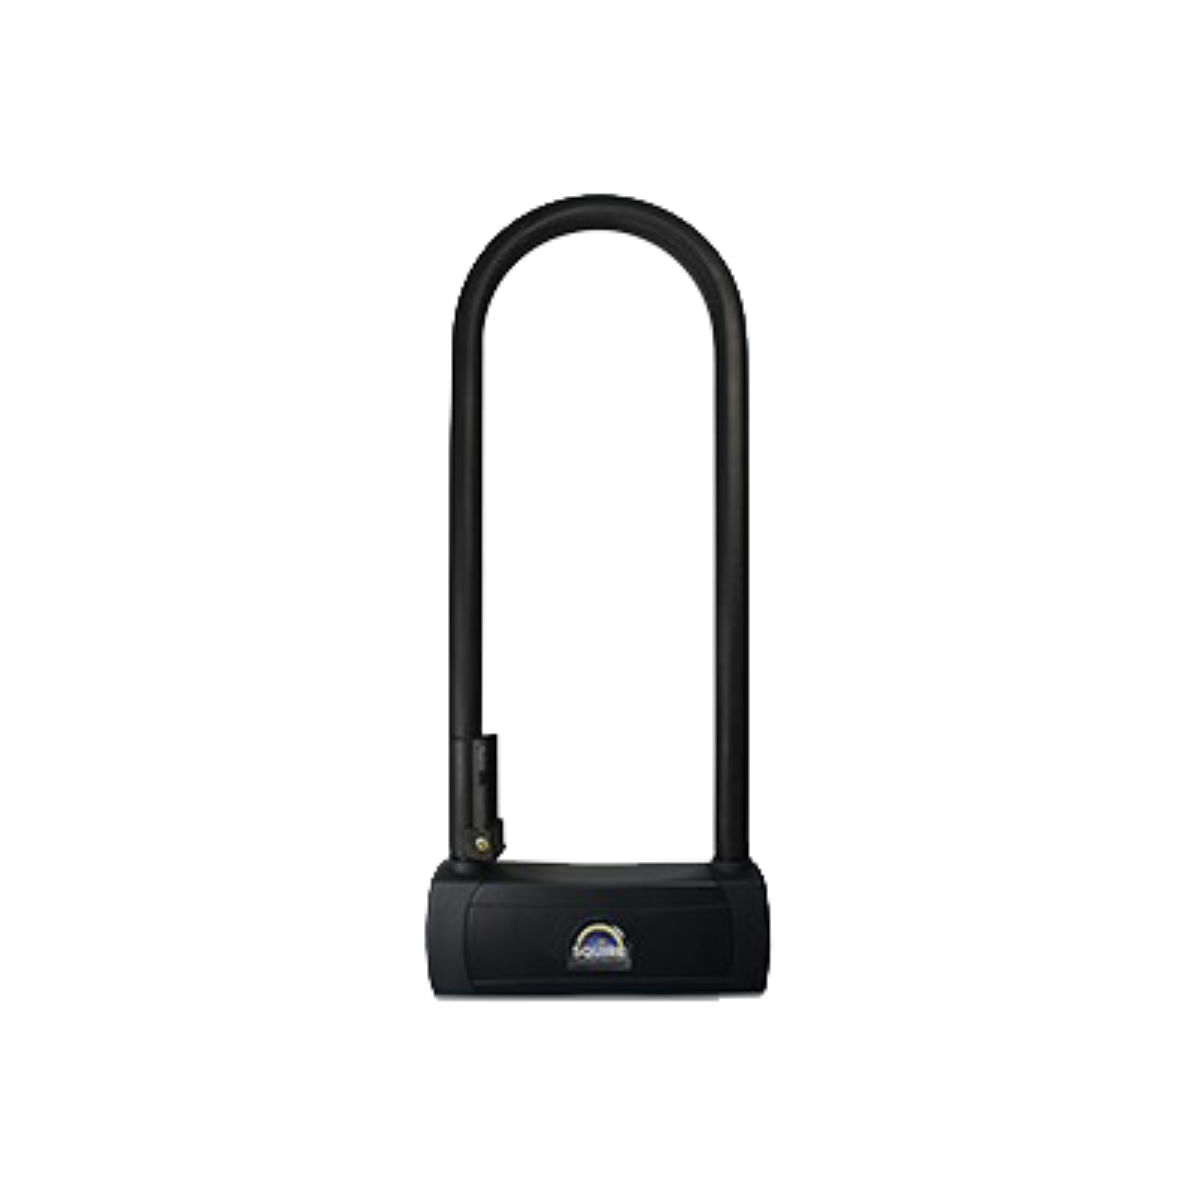 Squire hammerhead 290 d lock internal black ala906